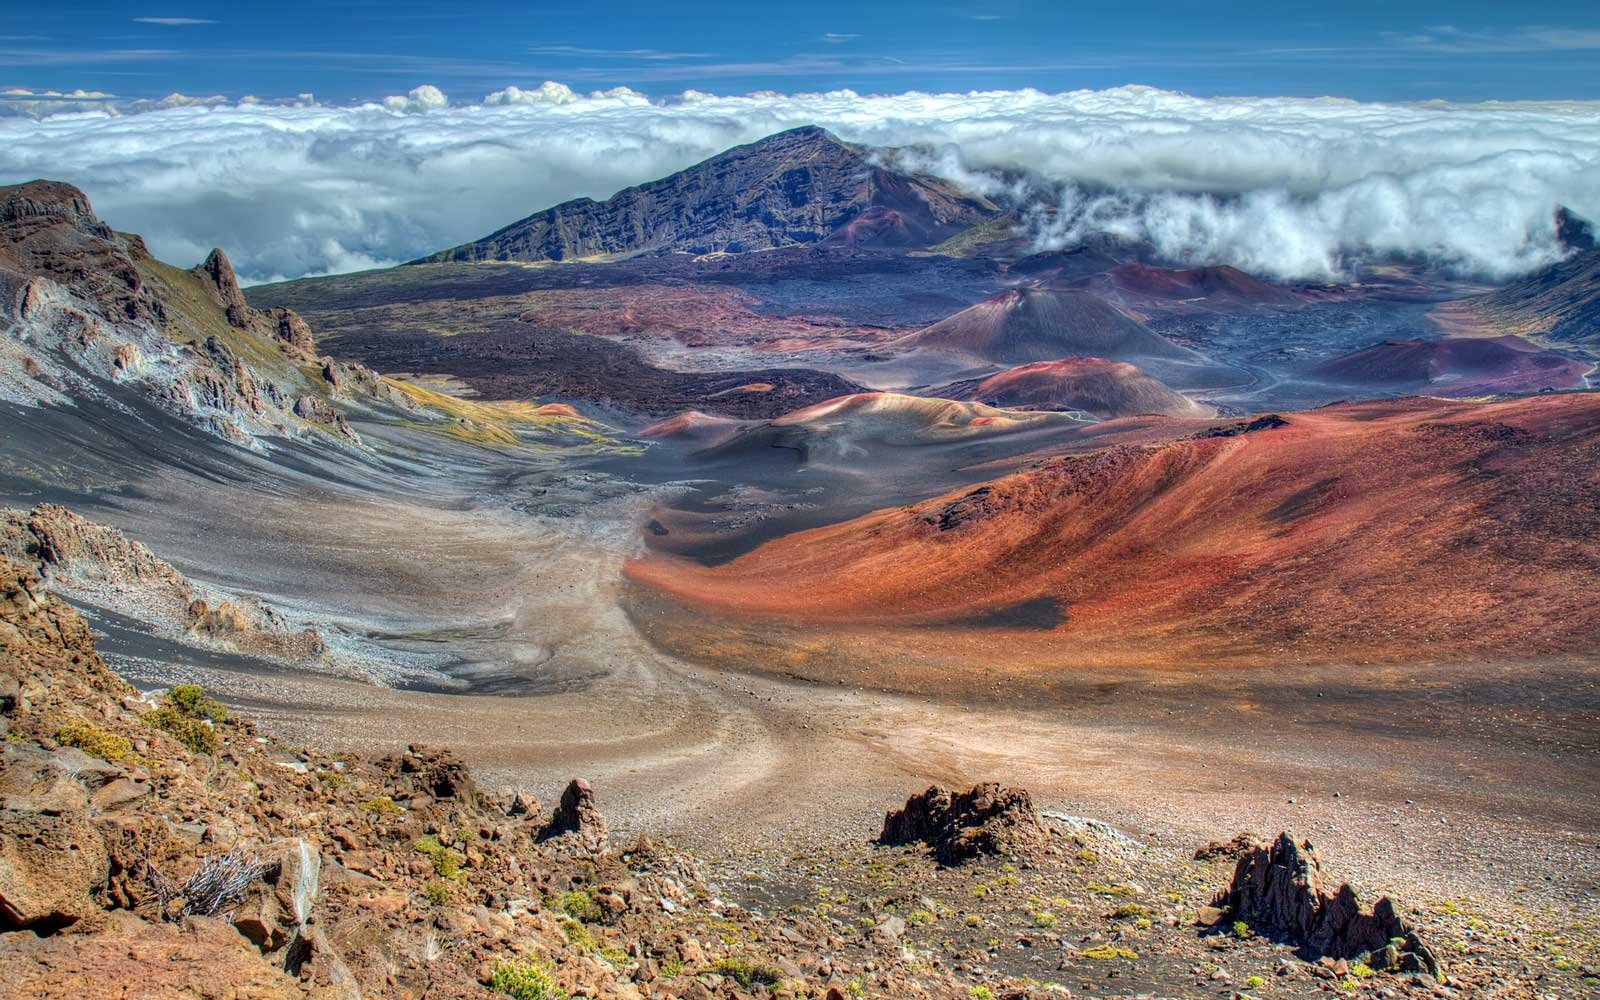 Guide to Haleakala